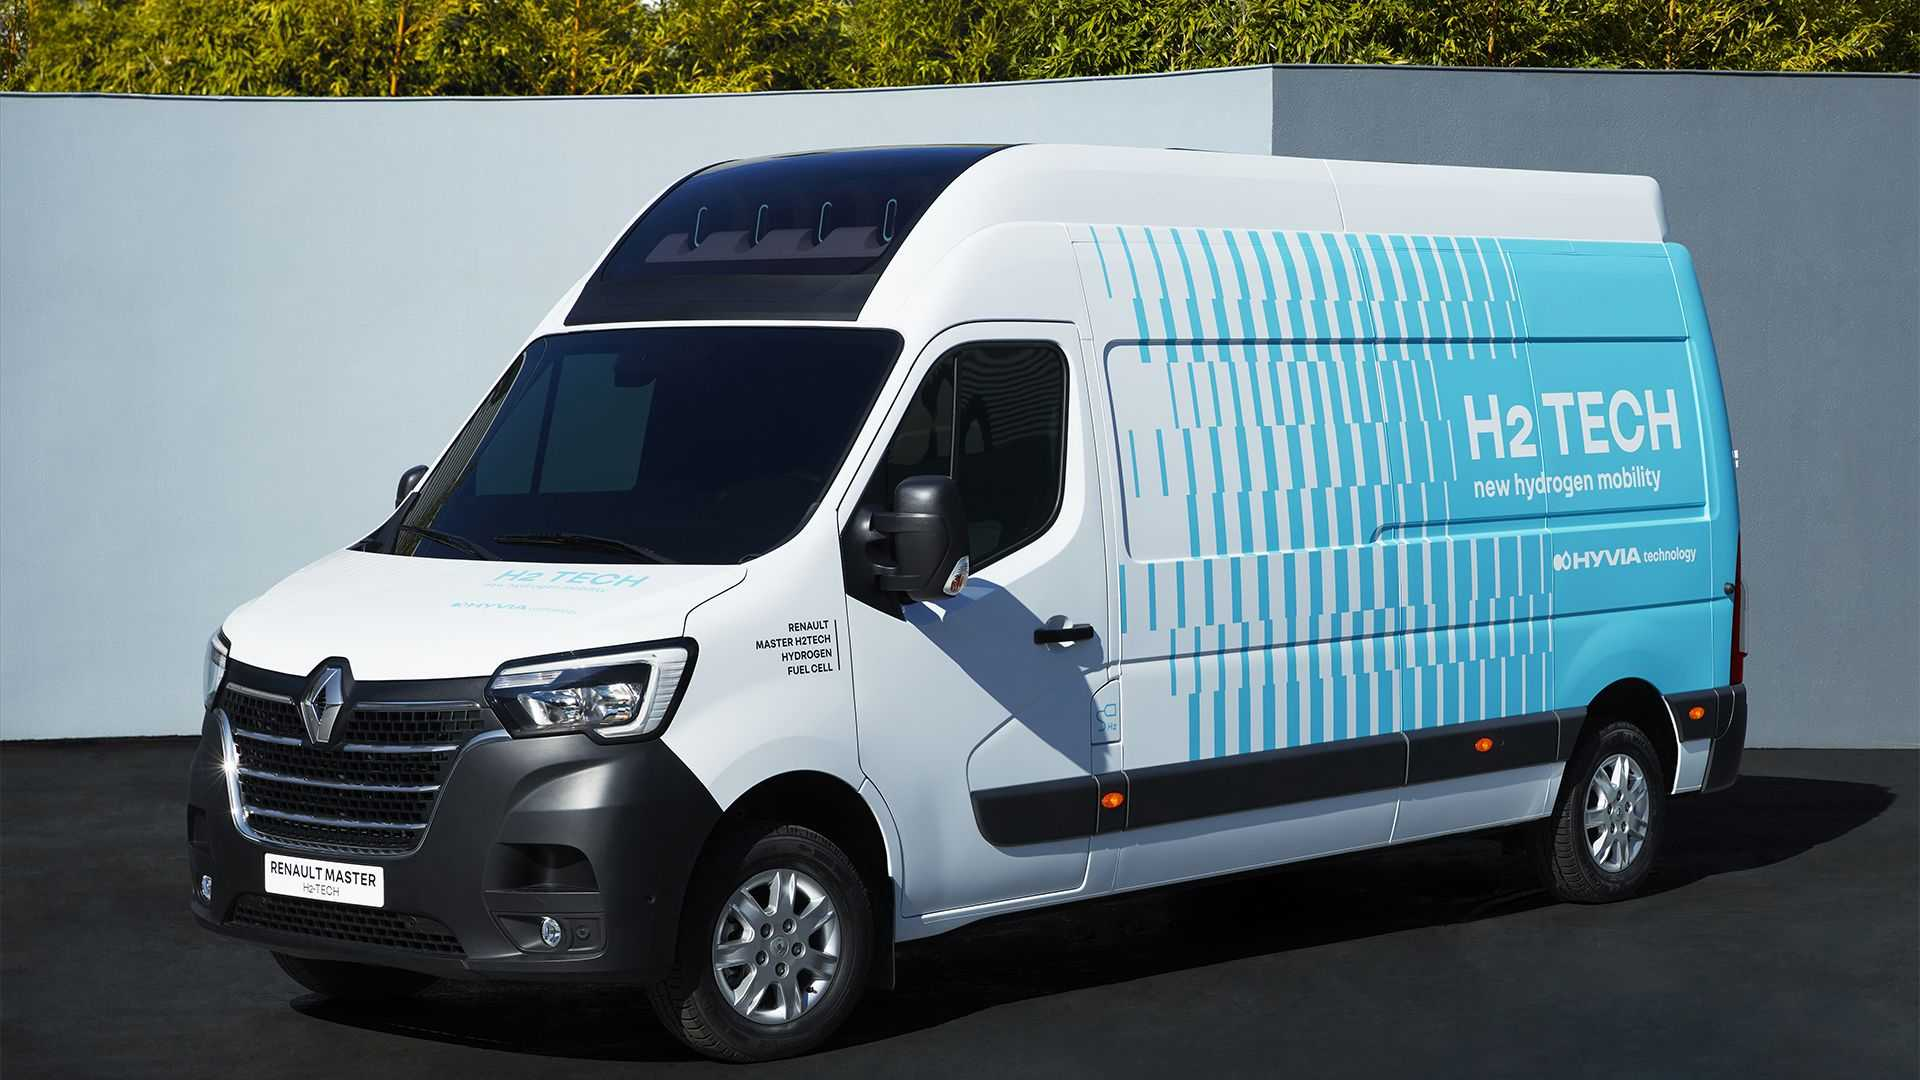 According to Renault, the Master hydrogen van shown here will reach showrooms next year. In the attached video, the company revealed its plans to simultaneously launch a network of hydrogen stations.